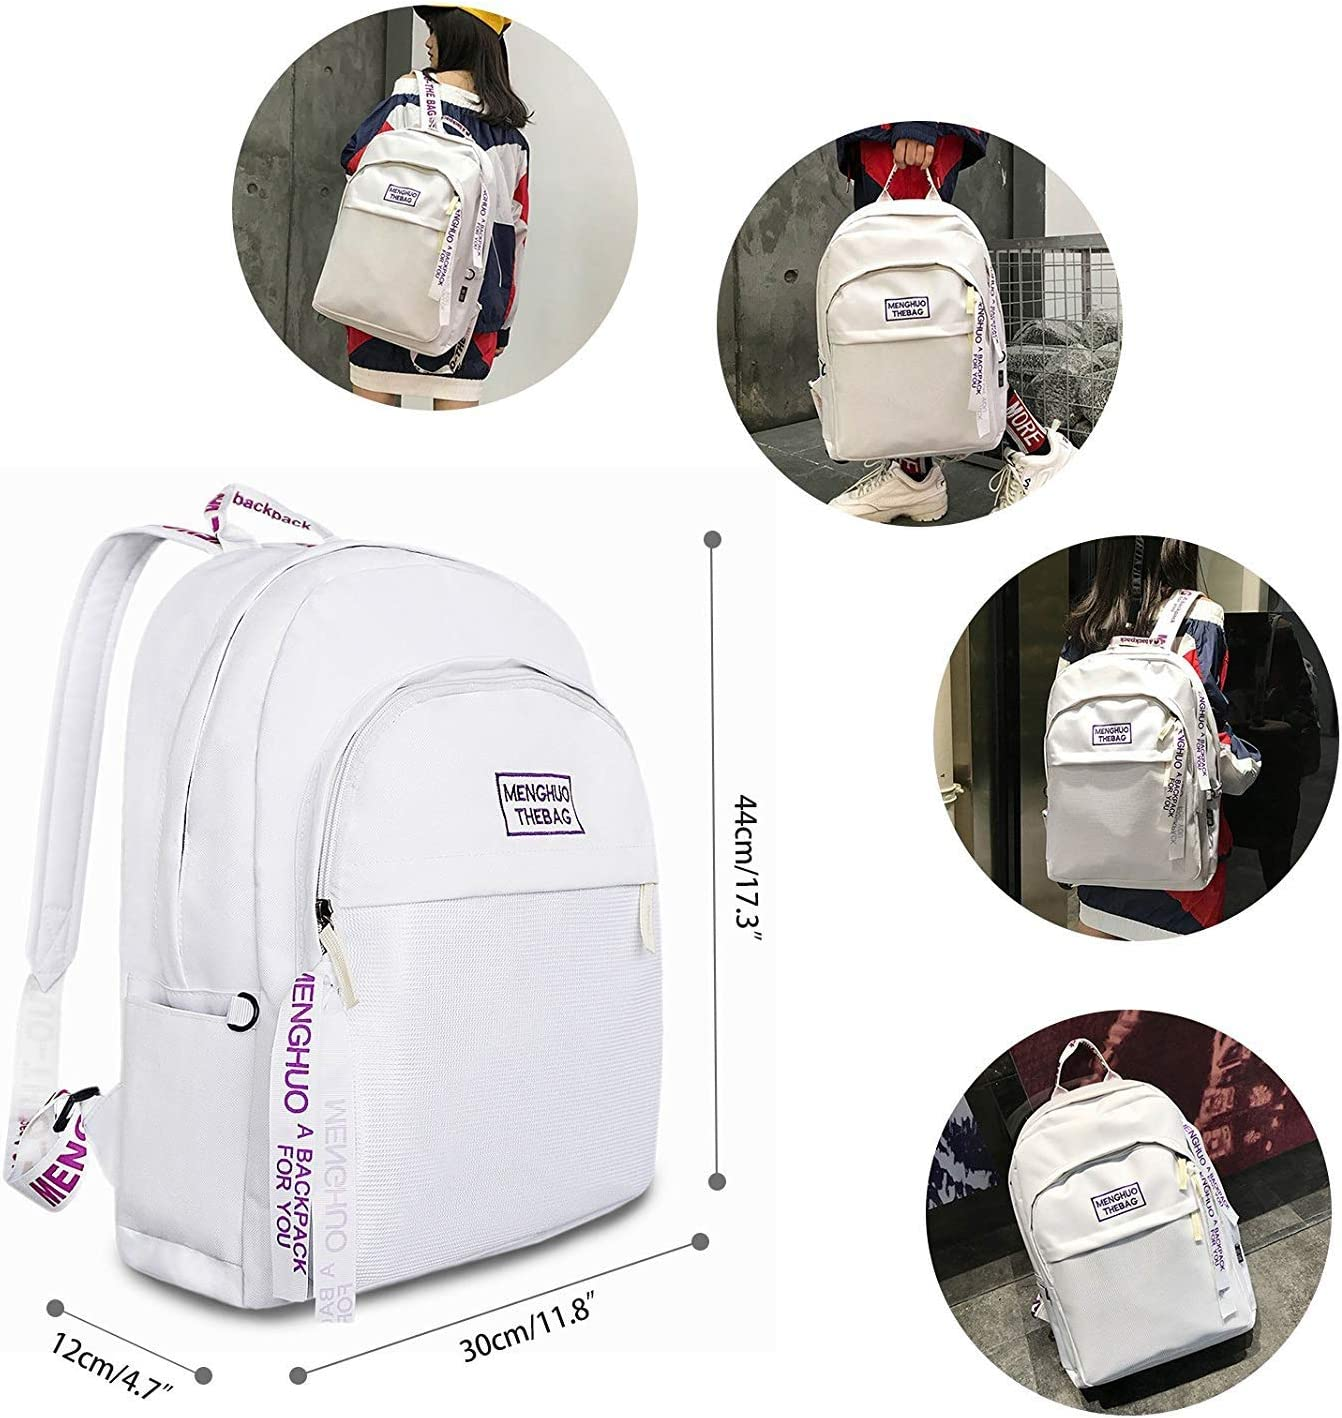 XFRJYKJ-Cartoon Backpack Fashion Trend Backpack Versatile School Bag Campus Student Backpack Color : White